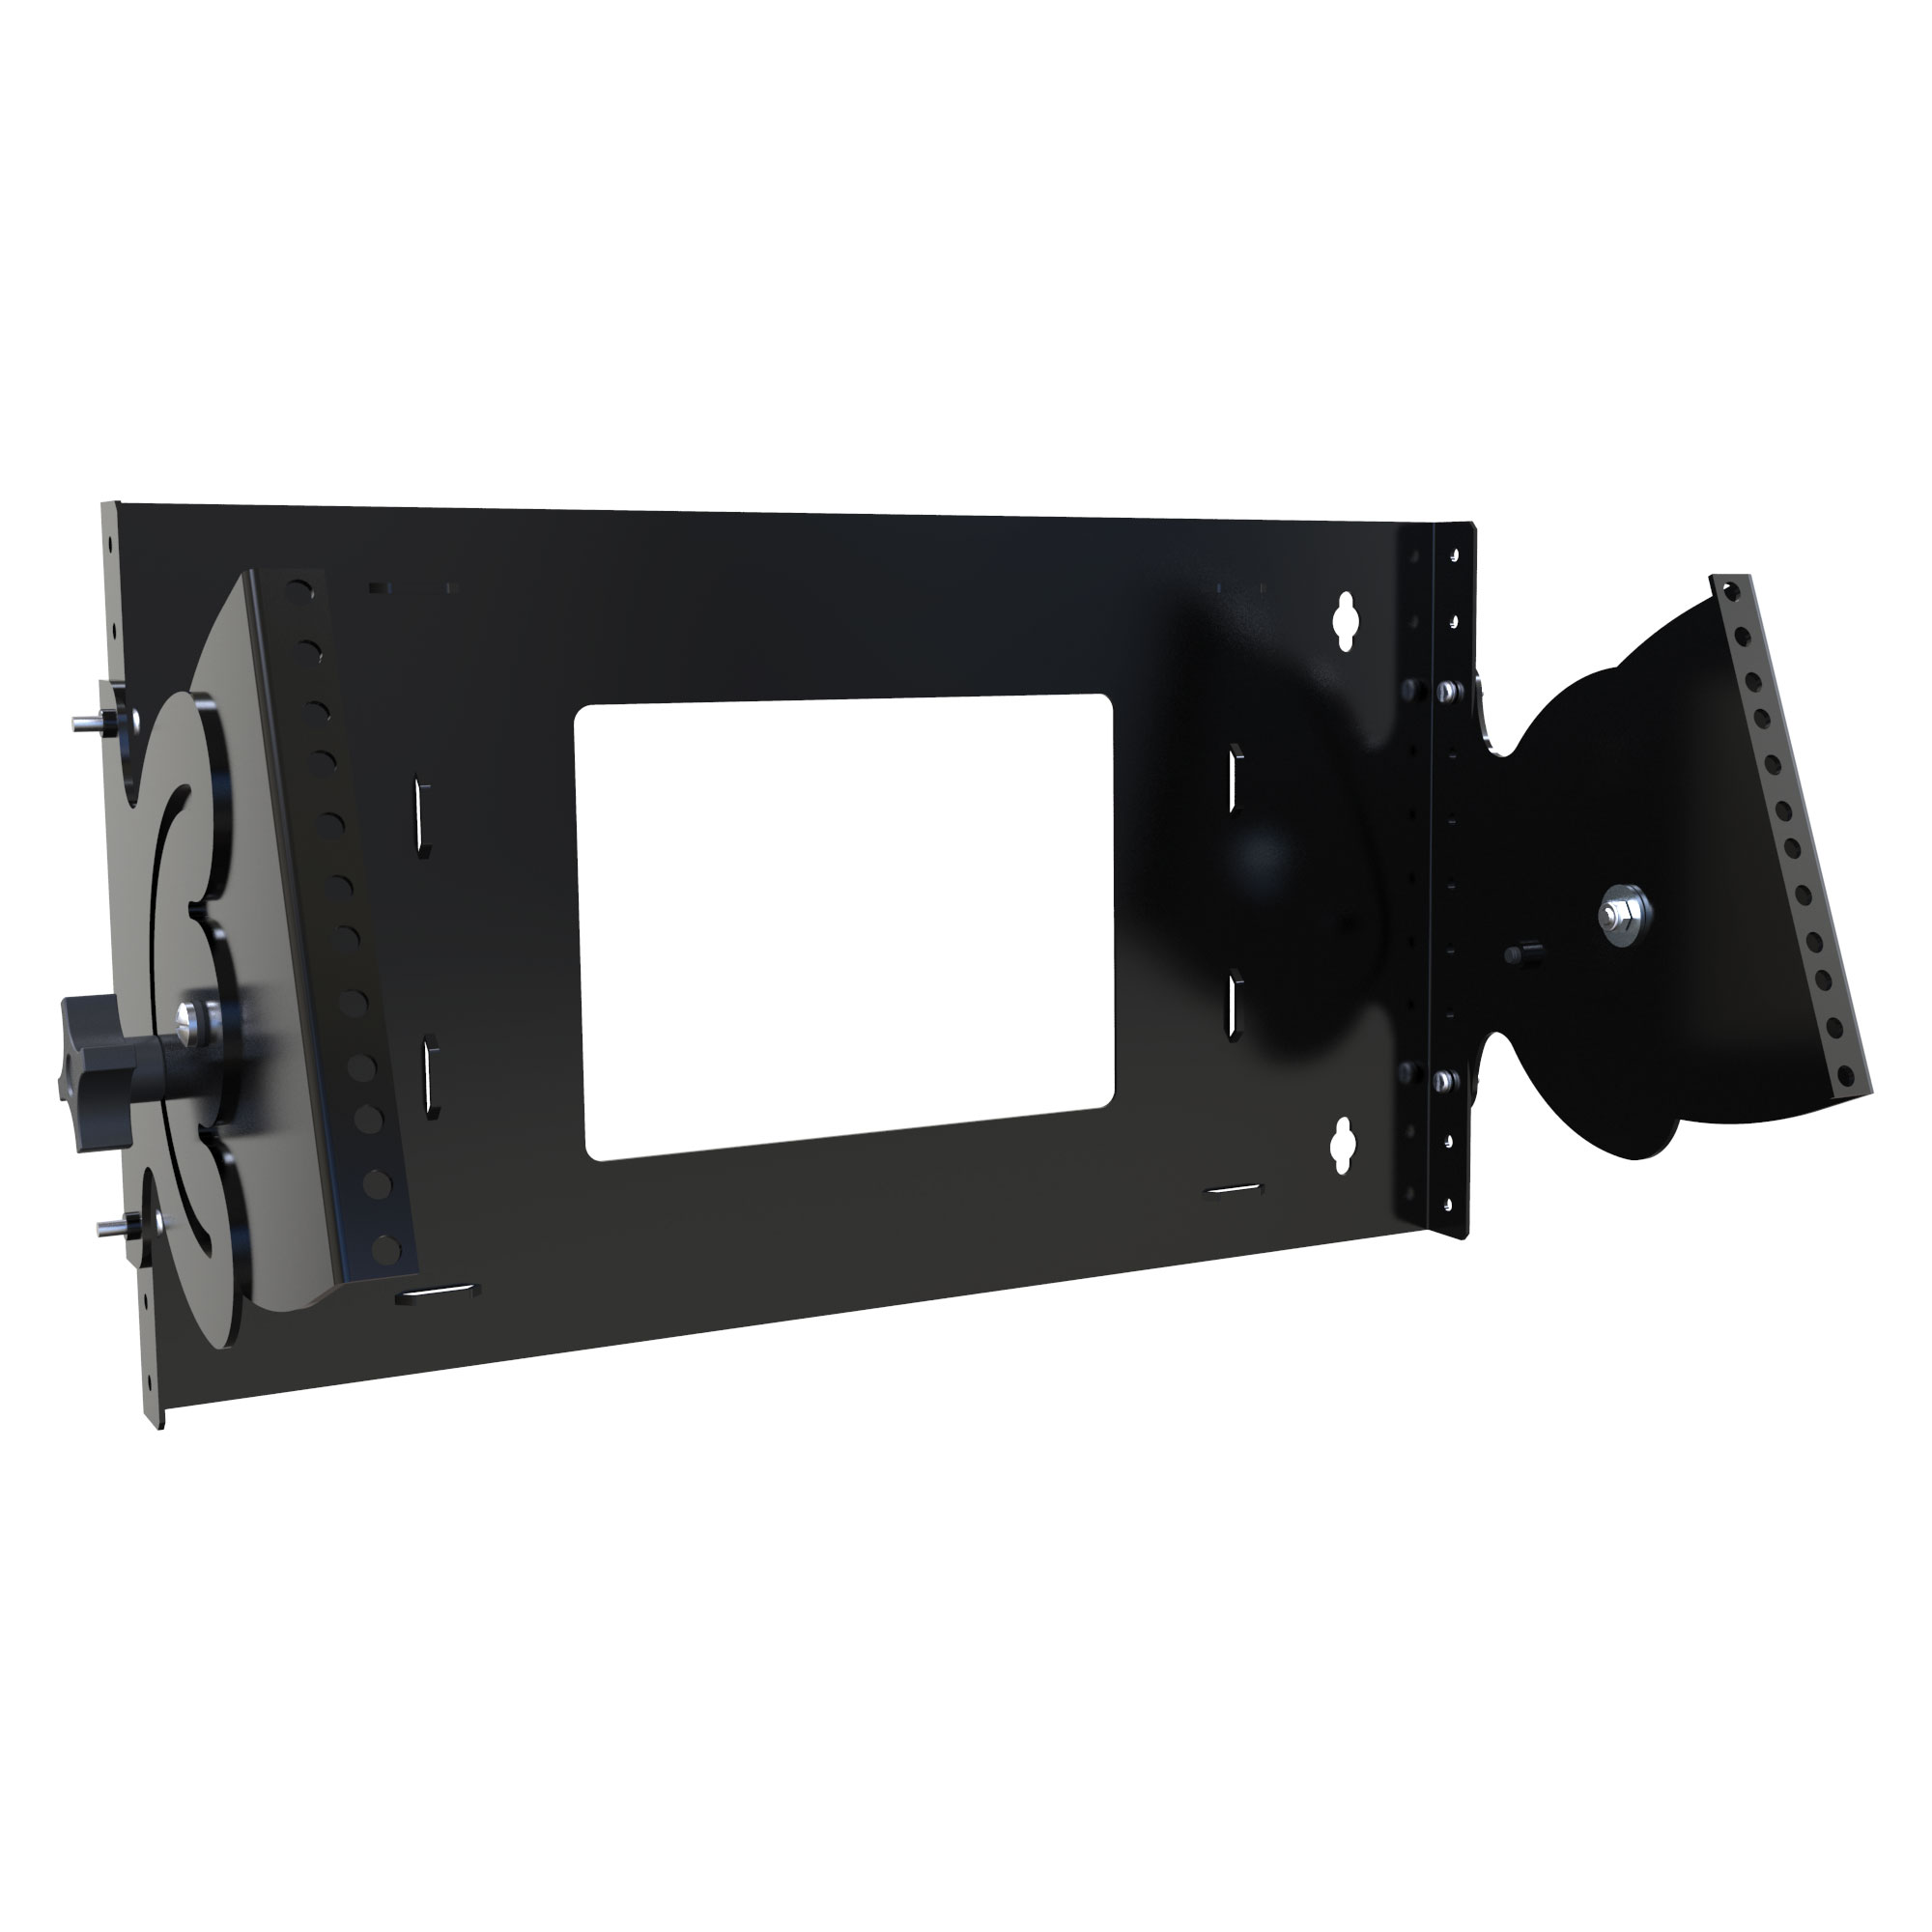 HLPB196UBK - HLPB Series Pivoiting Rail Wall Rack